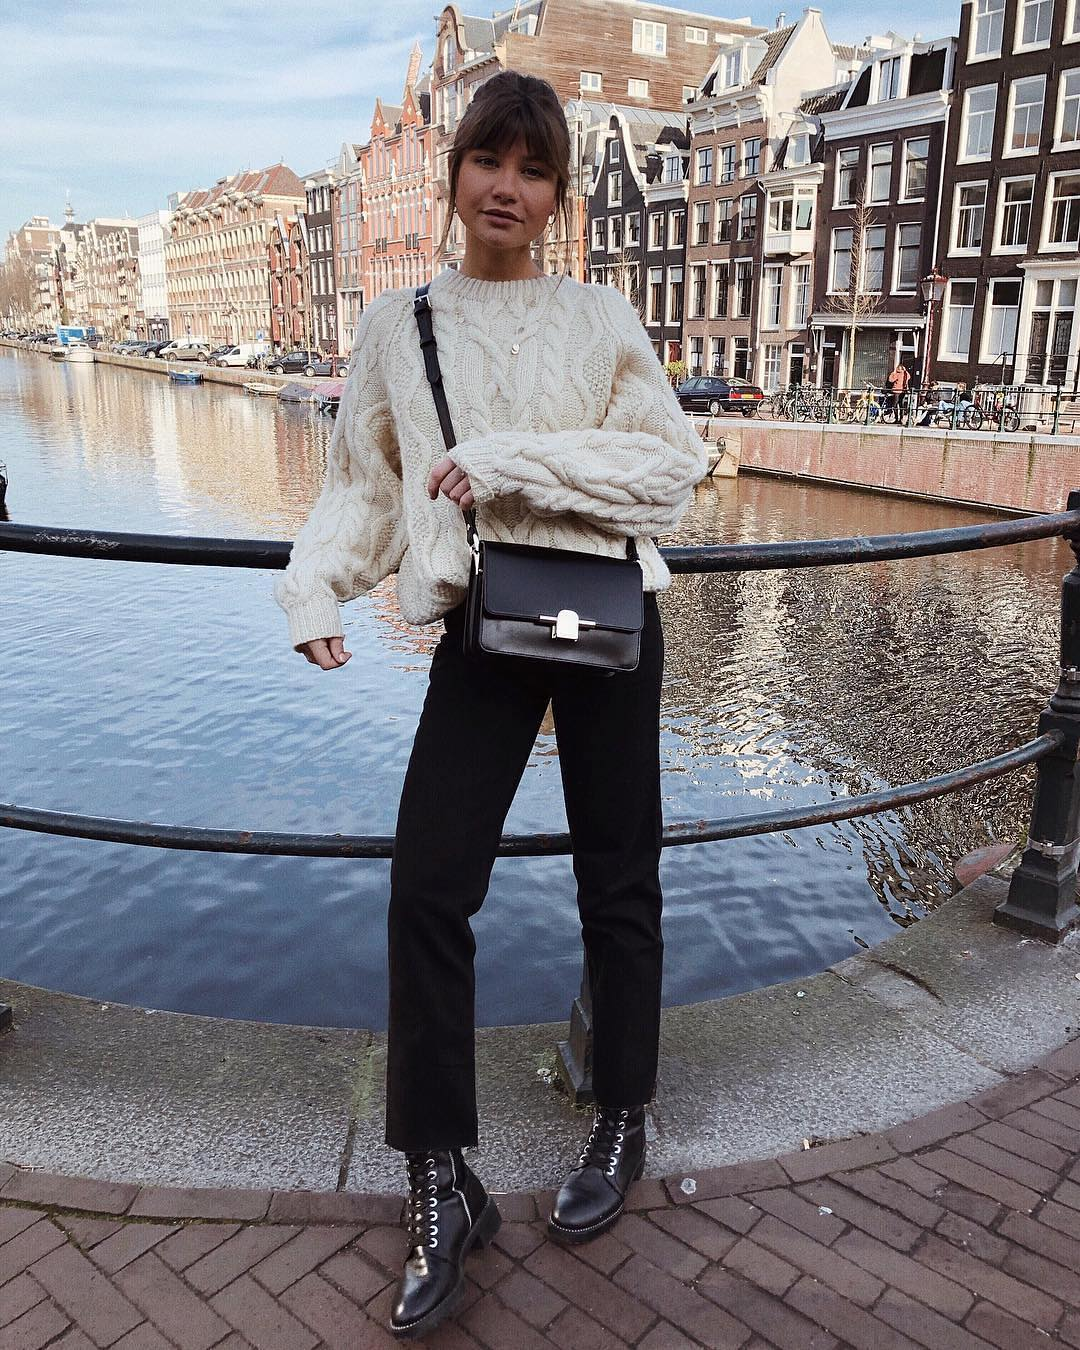 White Sweater And Black Pants For Amsterdam Street Walks 2019